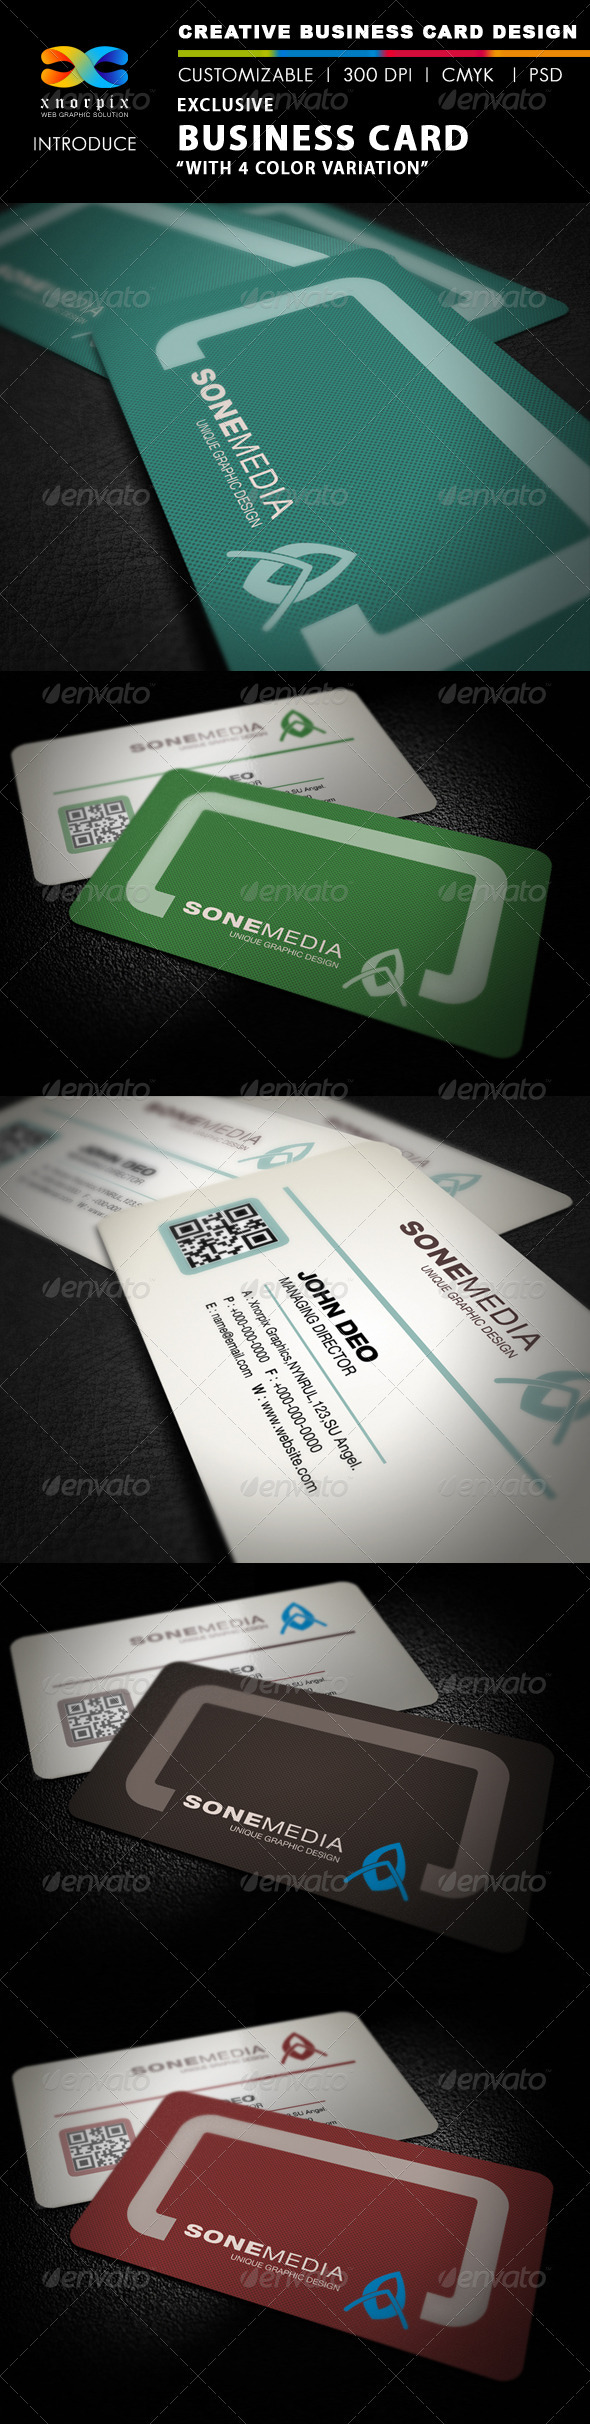 Exclusive Business Card - Corporate Business Cards